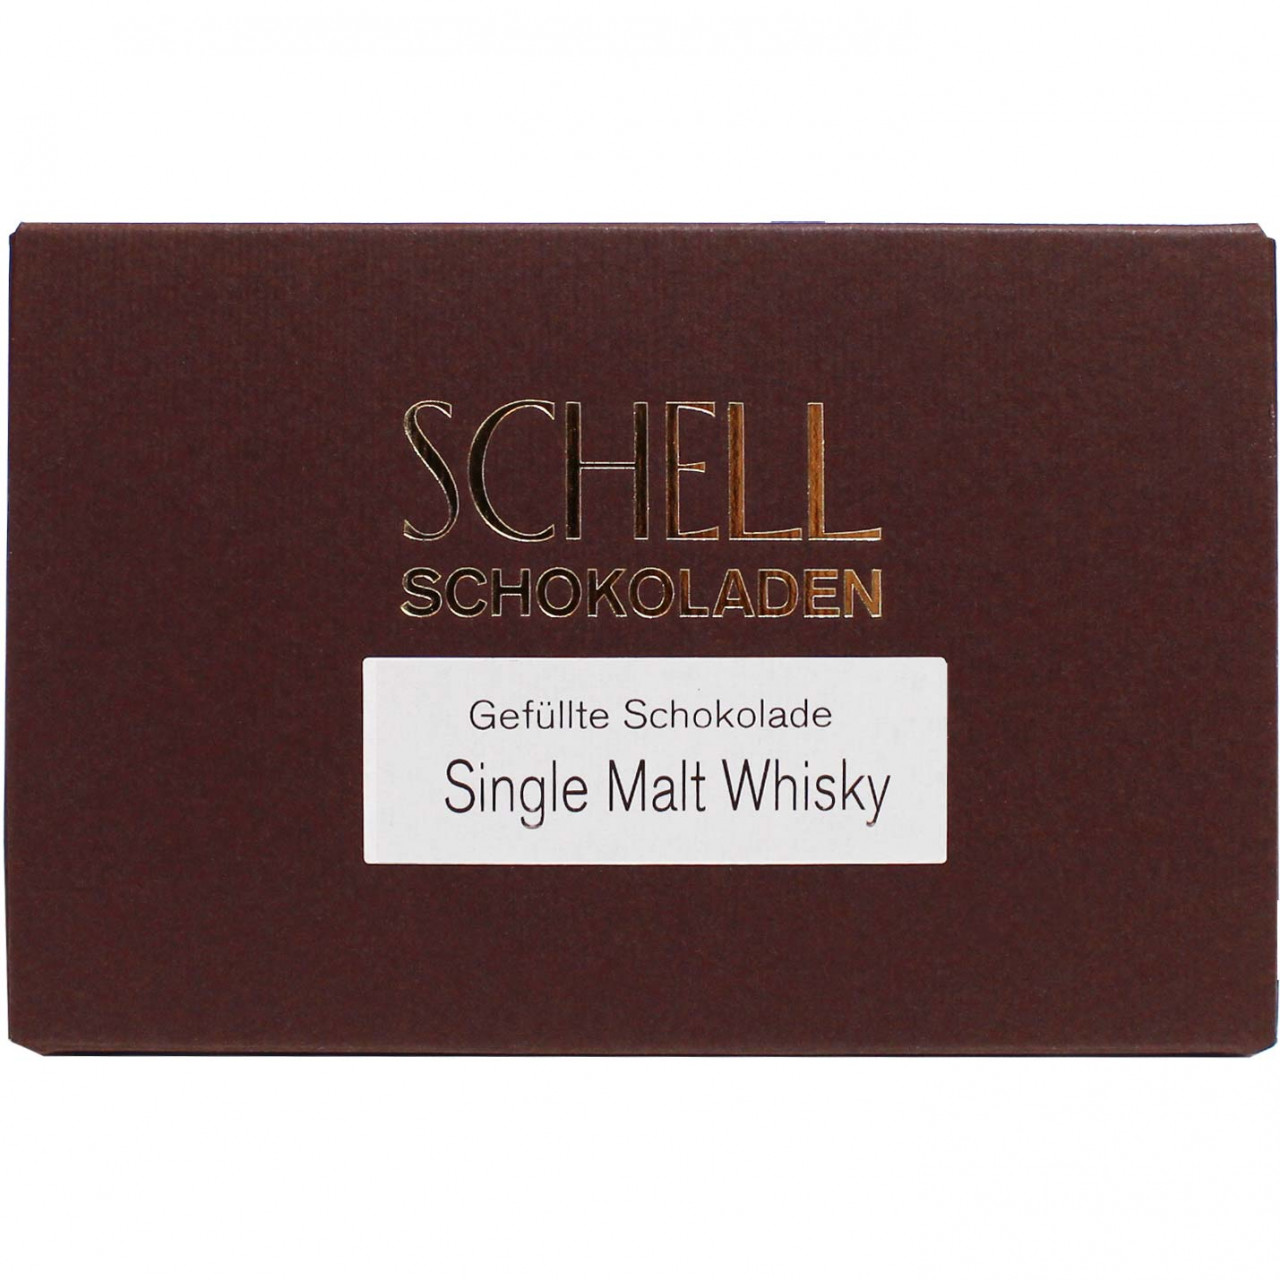 Schell Schokoladenmanufaktur Gundelsheim, filled chocolate, Whisky Trüffel, Whisky Pralinen, Laphroiagh Single Malt Whisky